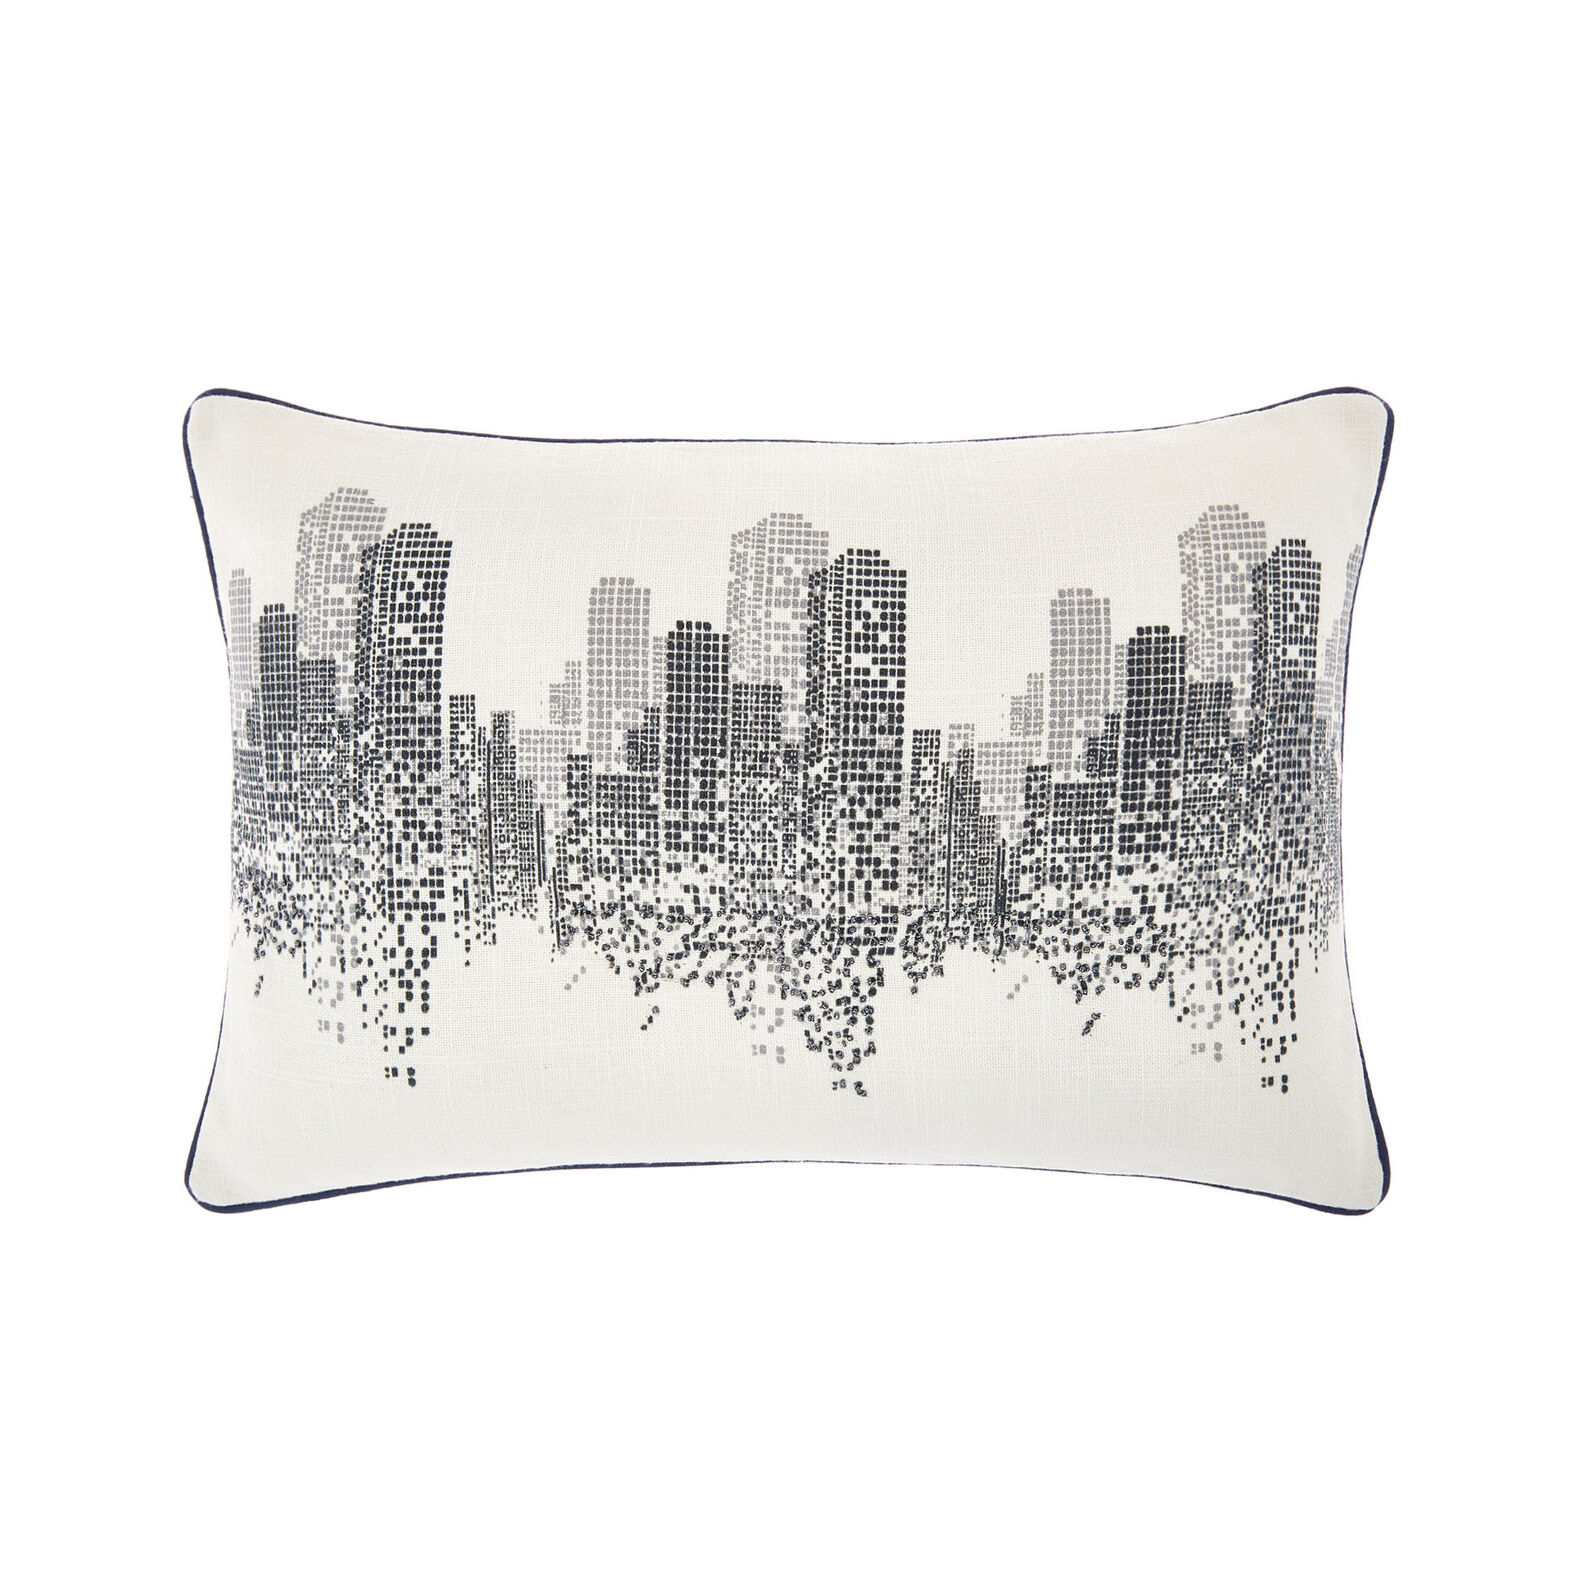 Cushion with skyscraper embroidery 35x50cm